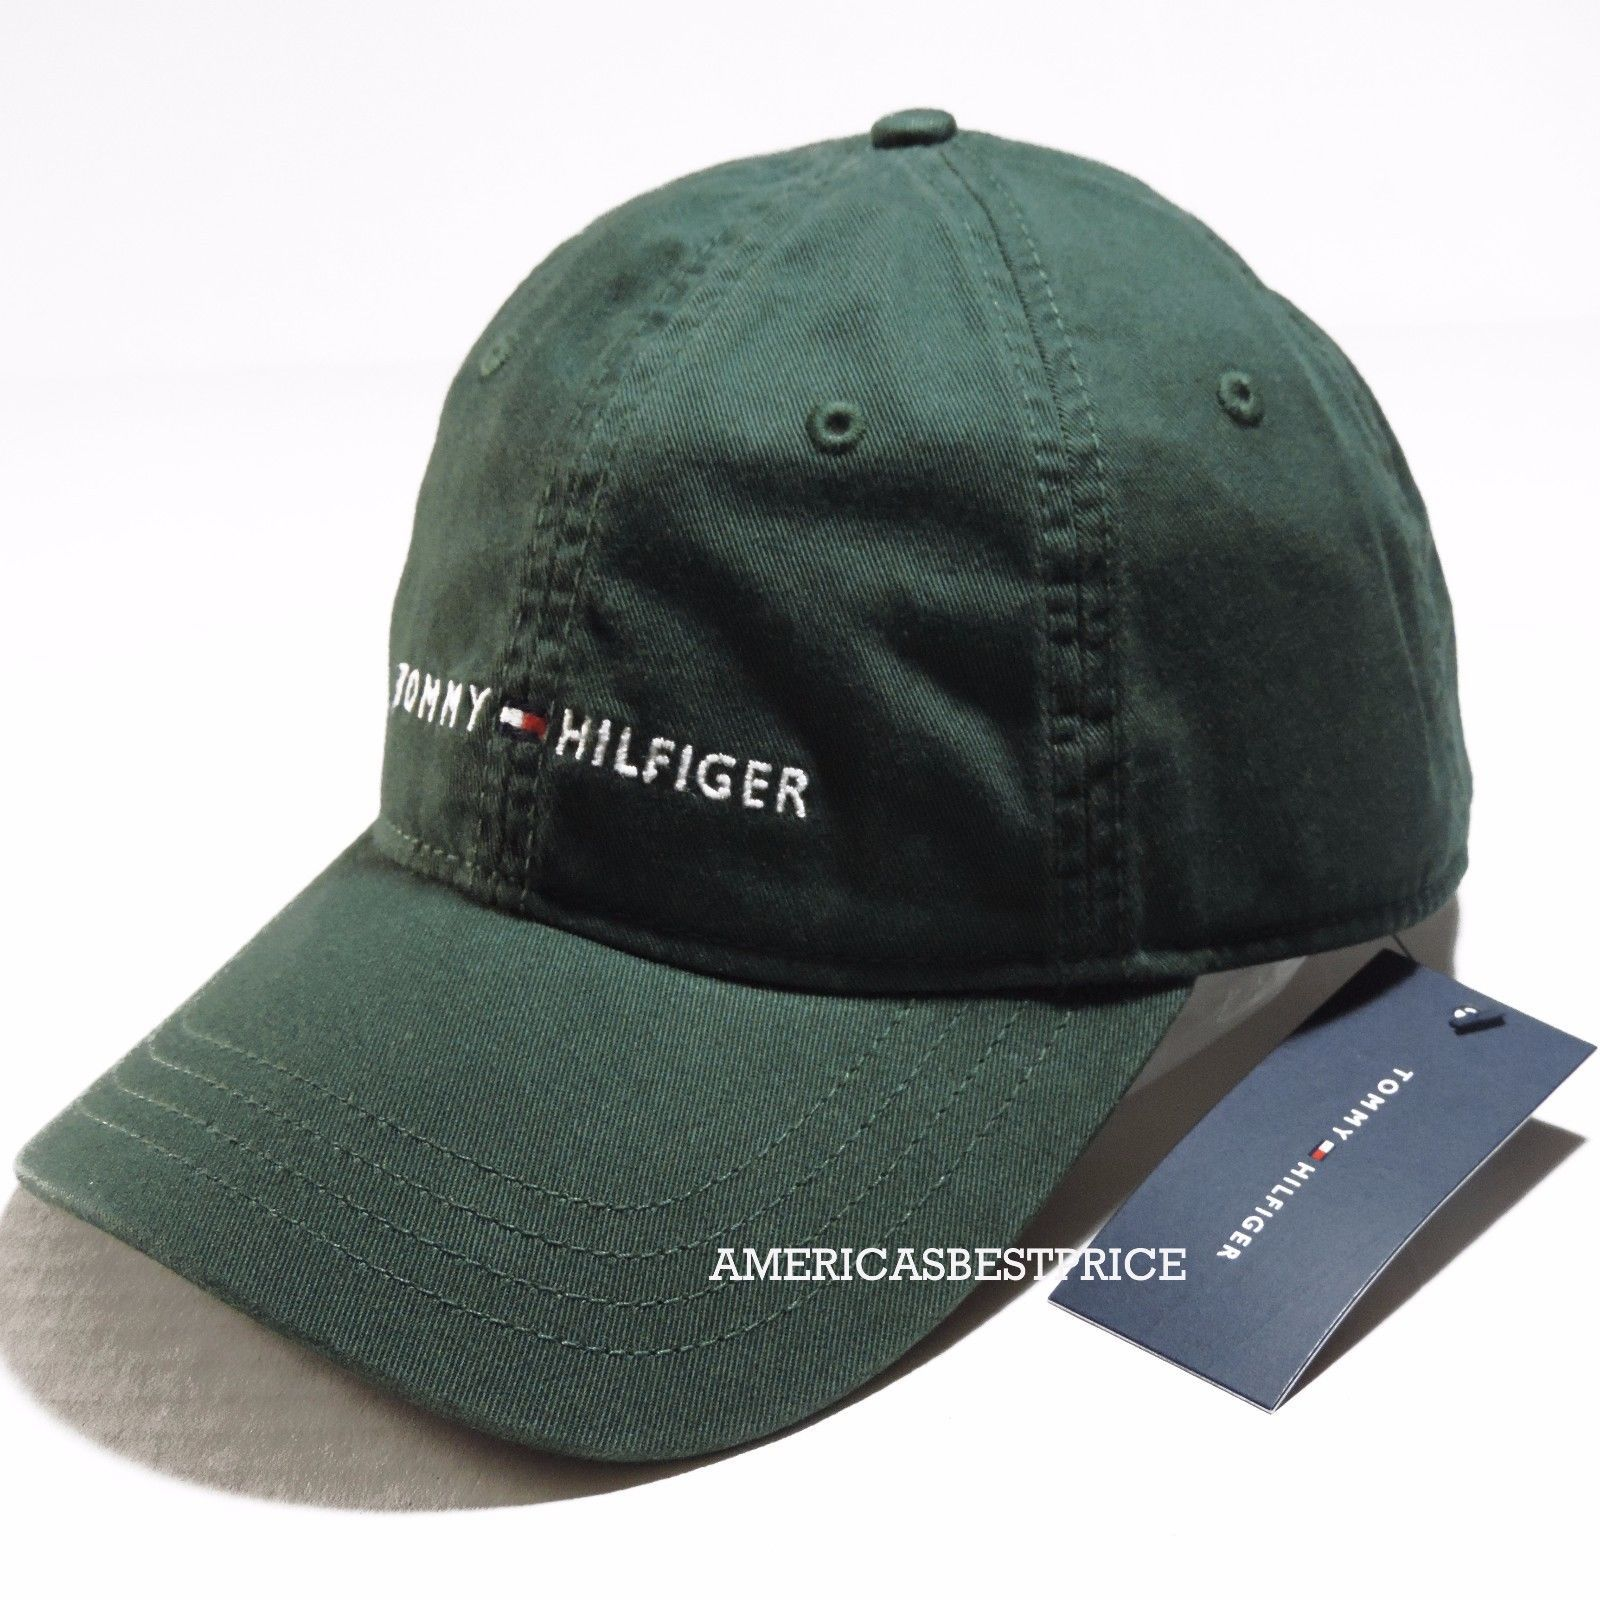 sports shoes e2ac6 0889d TOMMY HILFIGER NEW MENS BASEBALL CAP,NWT,HAT,BLACK,GREEN,BLUE